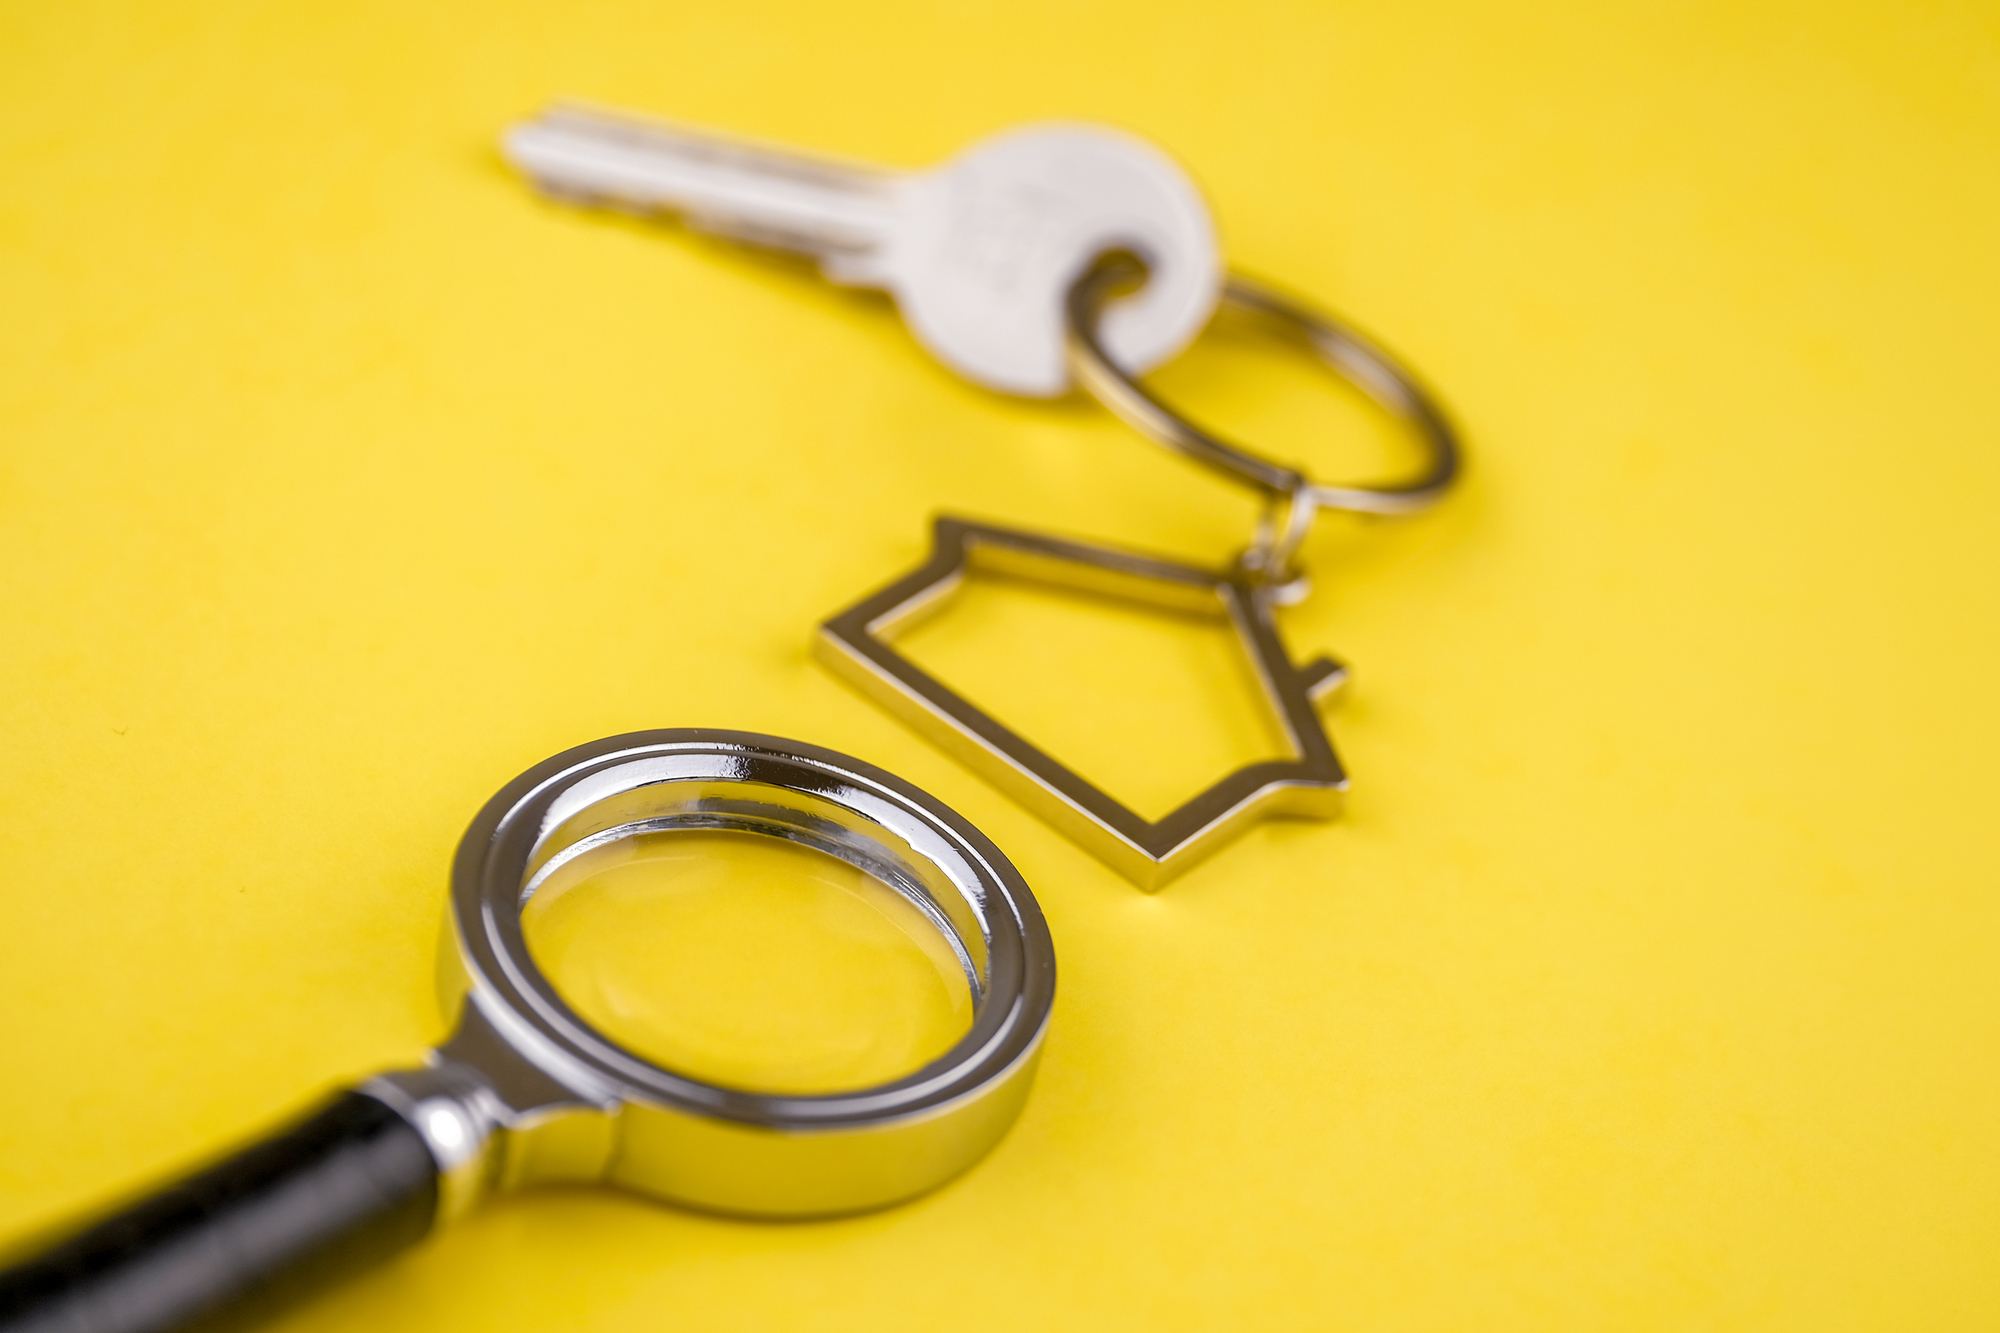 The concept of checking the legal purity of a private house or apartment